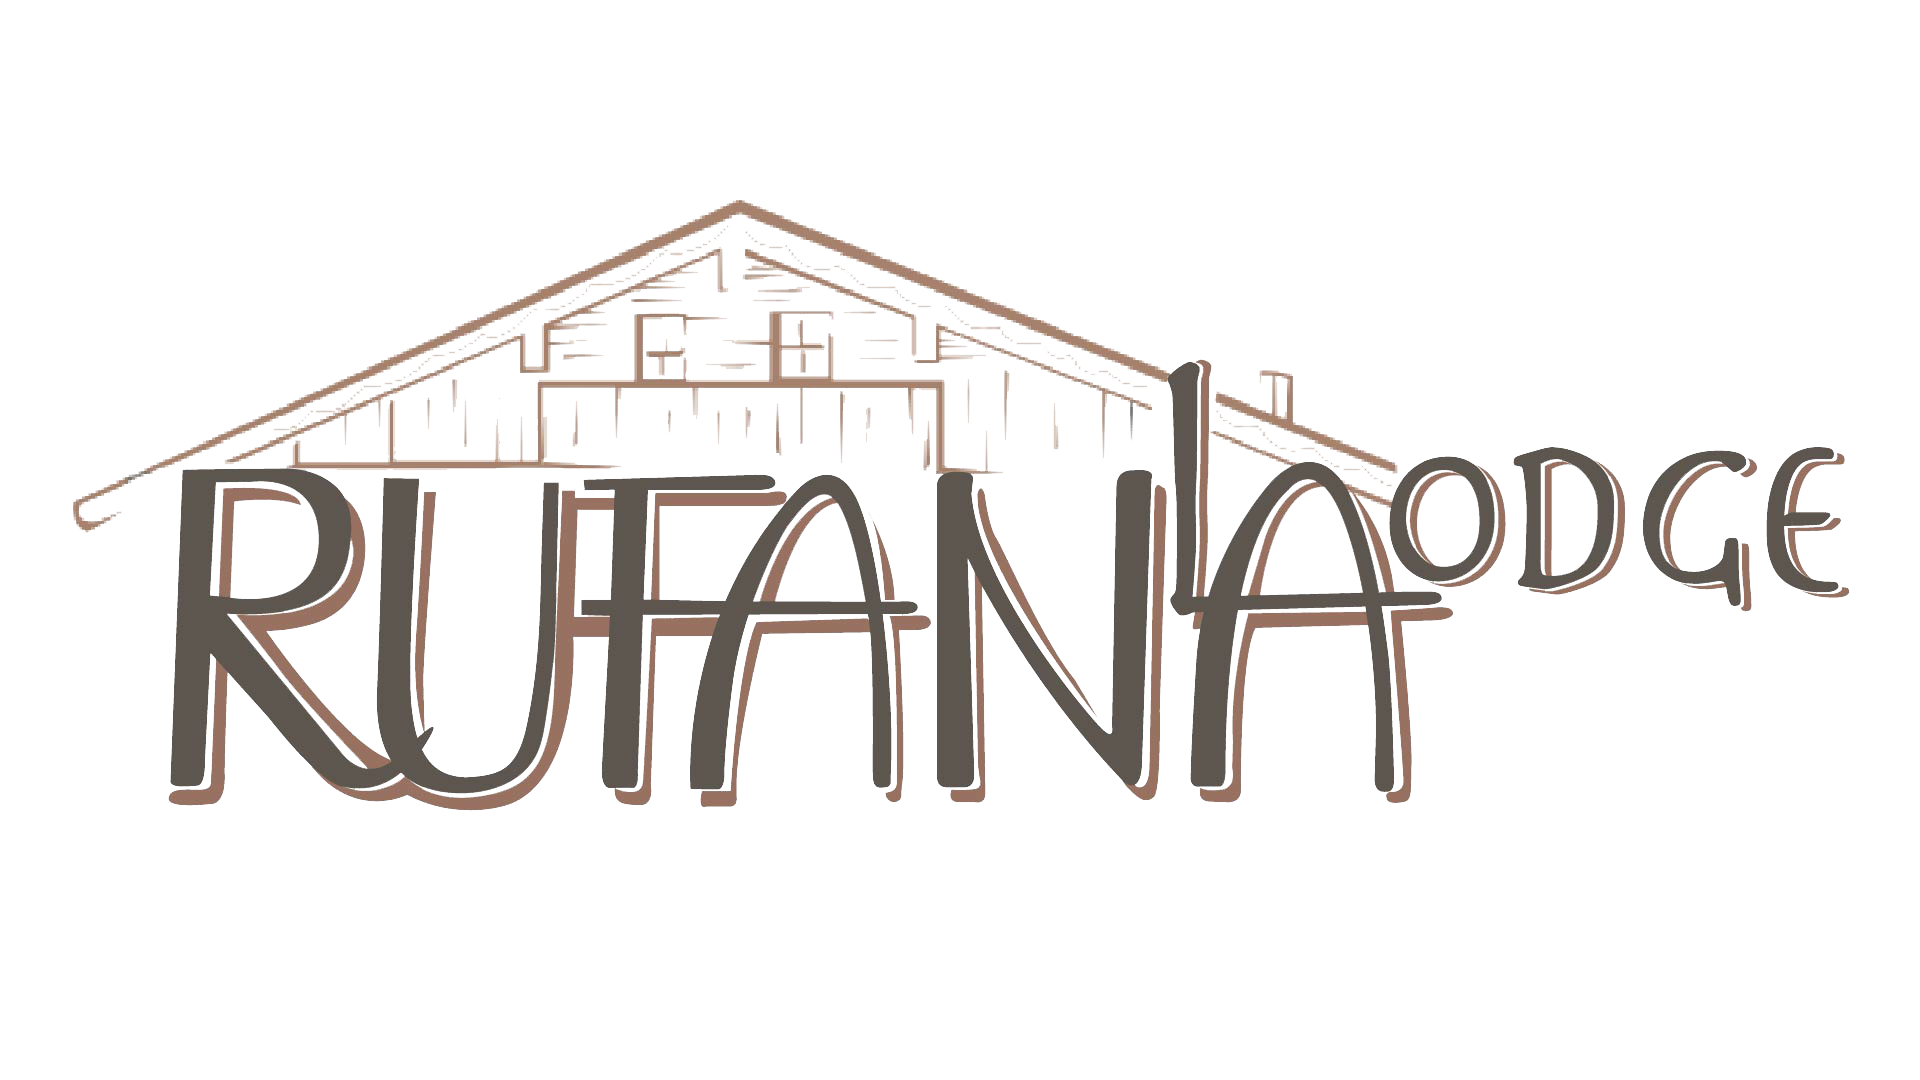 Rufana_Lodge-Logo-FINALtransparent